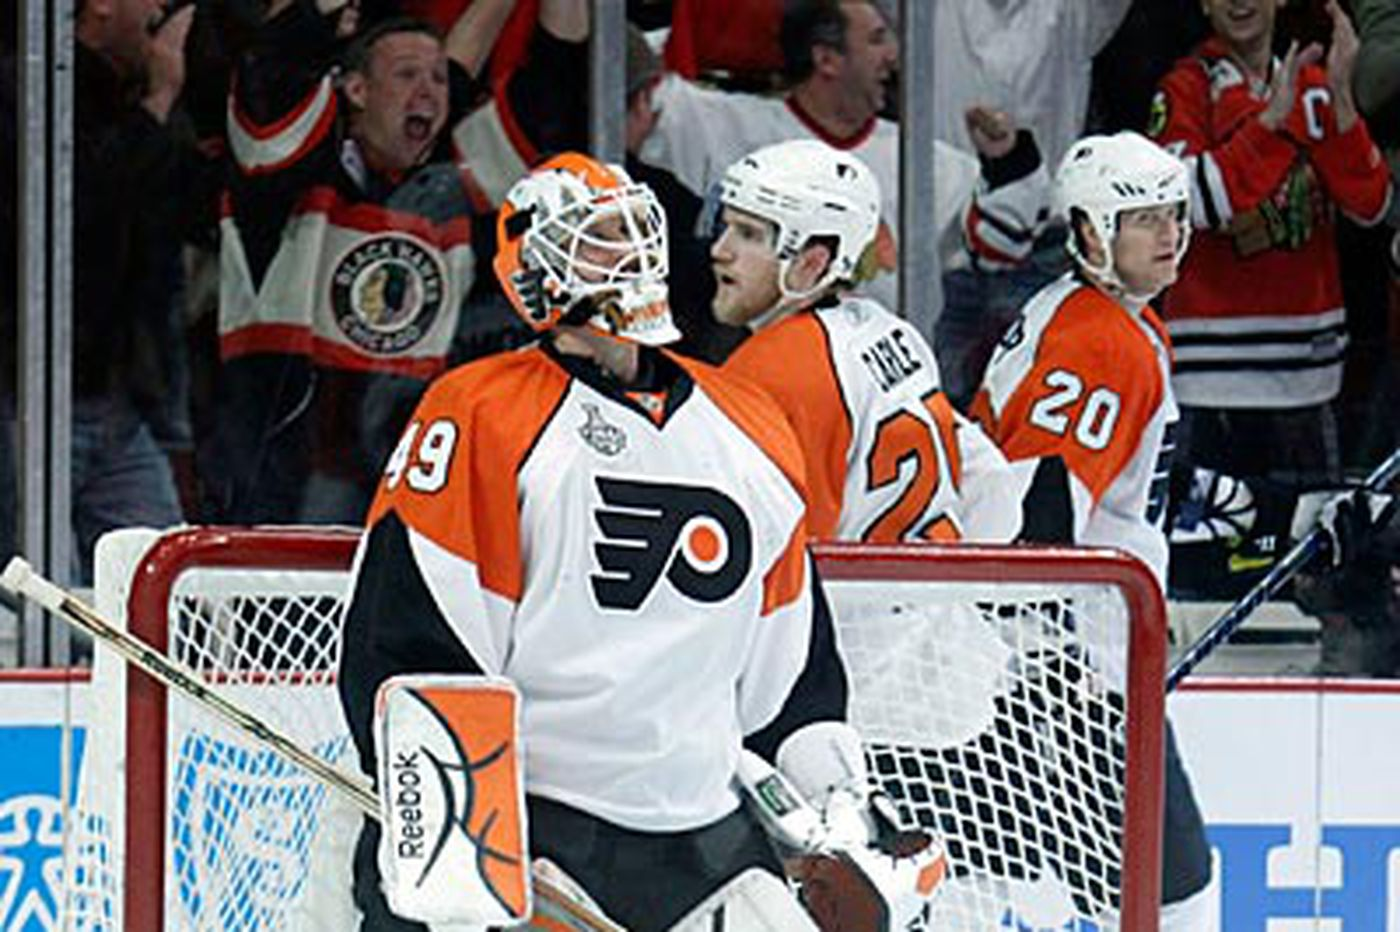 As they assess season, Flyers have to address goaltending